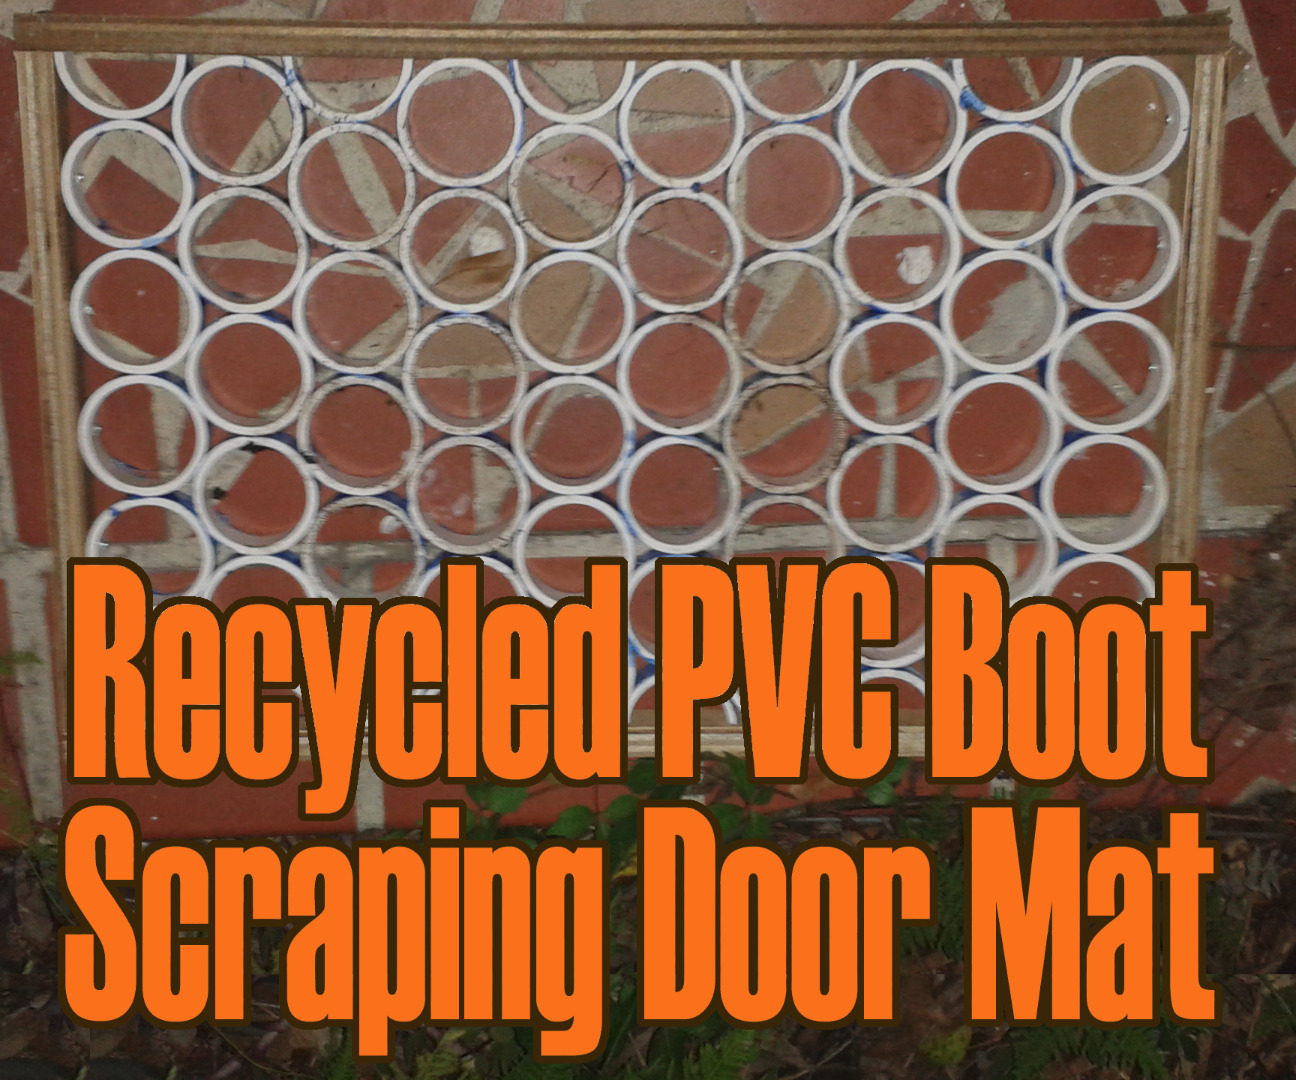 Picture of Recycled PVC Boot Scrubbing Door Mat